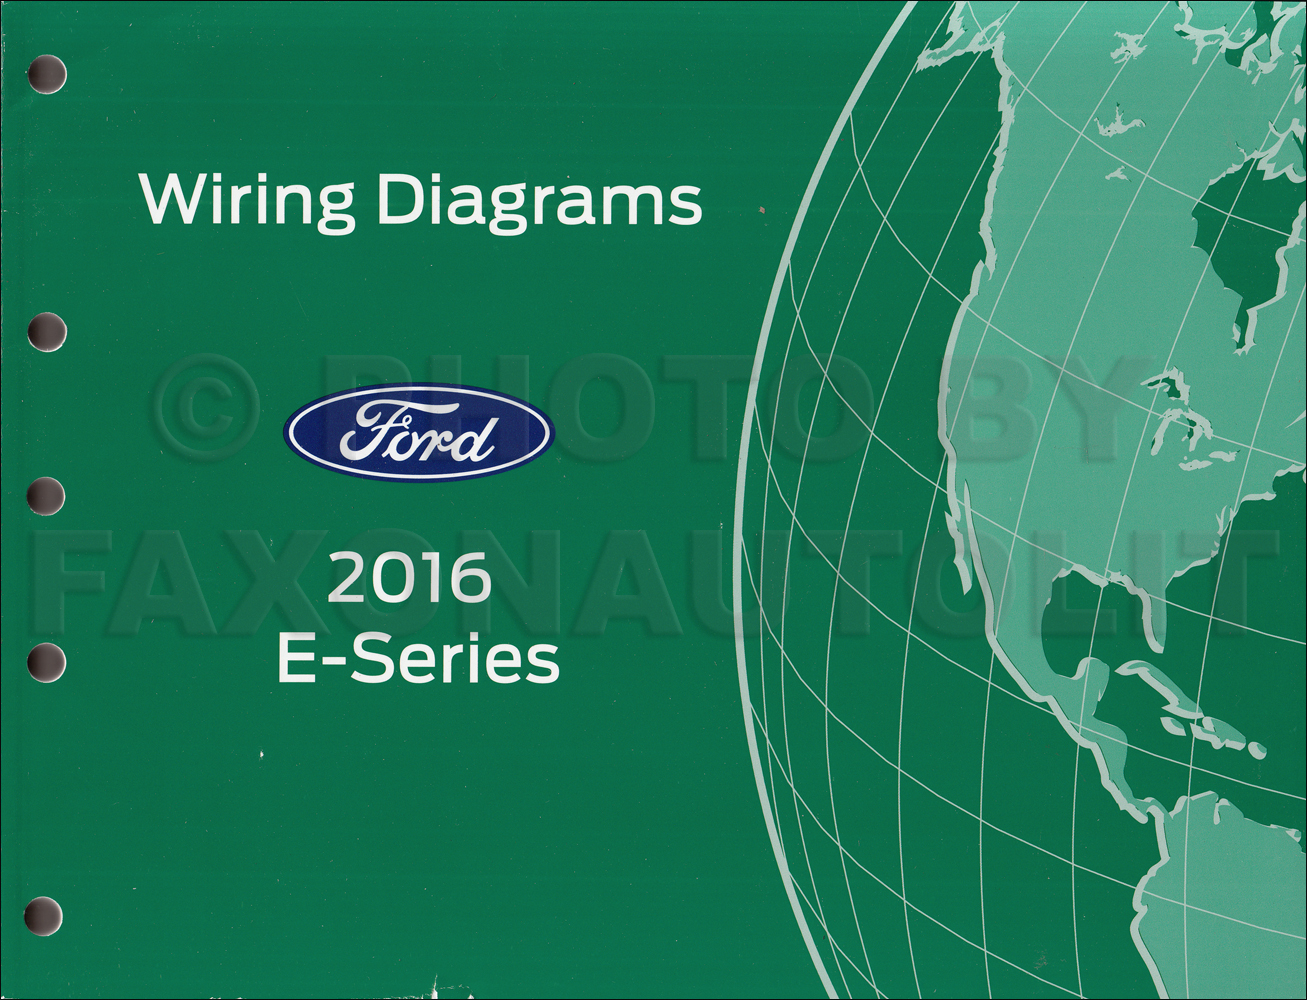 E450 Wire Diagram Electronicswiring Sunseeker Boat Wiring 2016 Ford Econoline Manual Original Van E 350 450